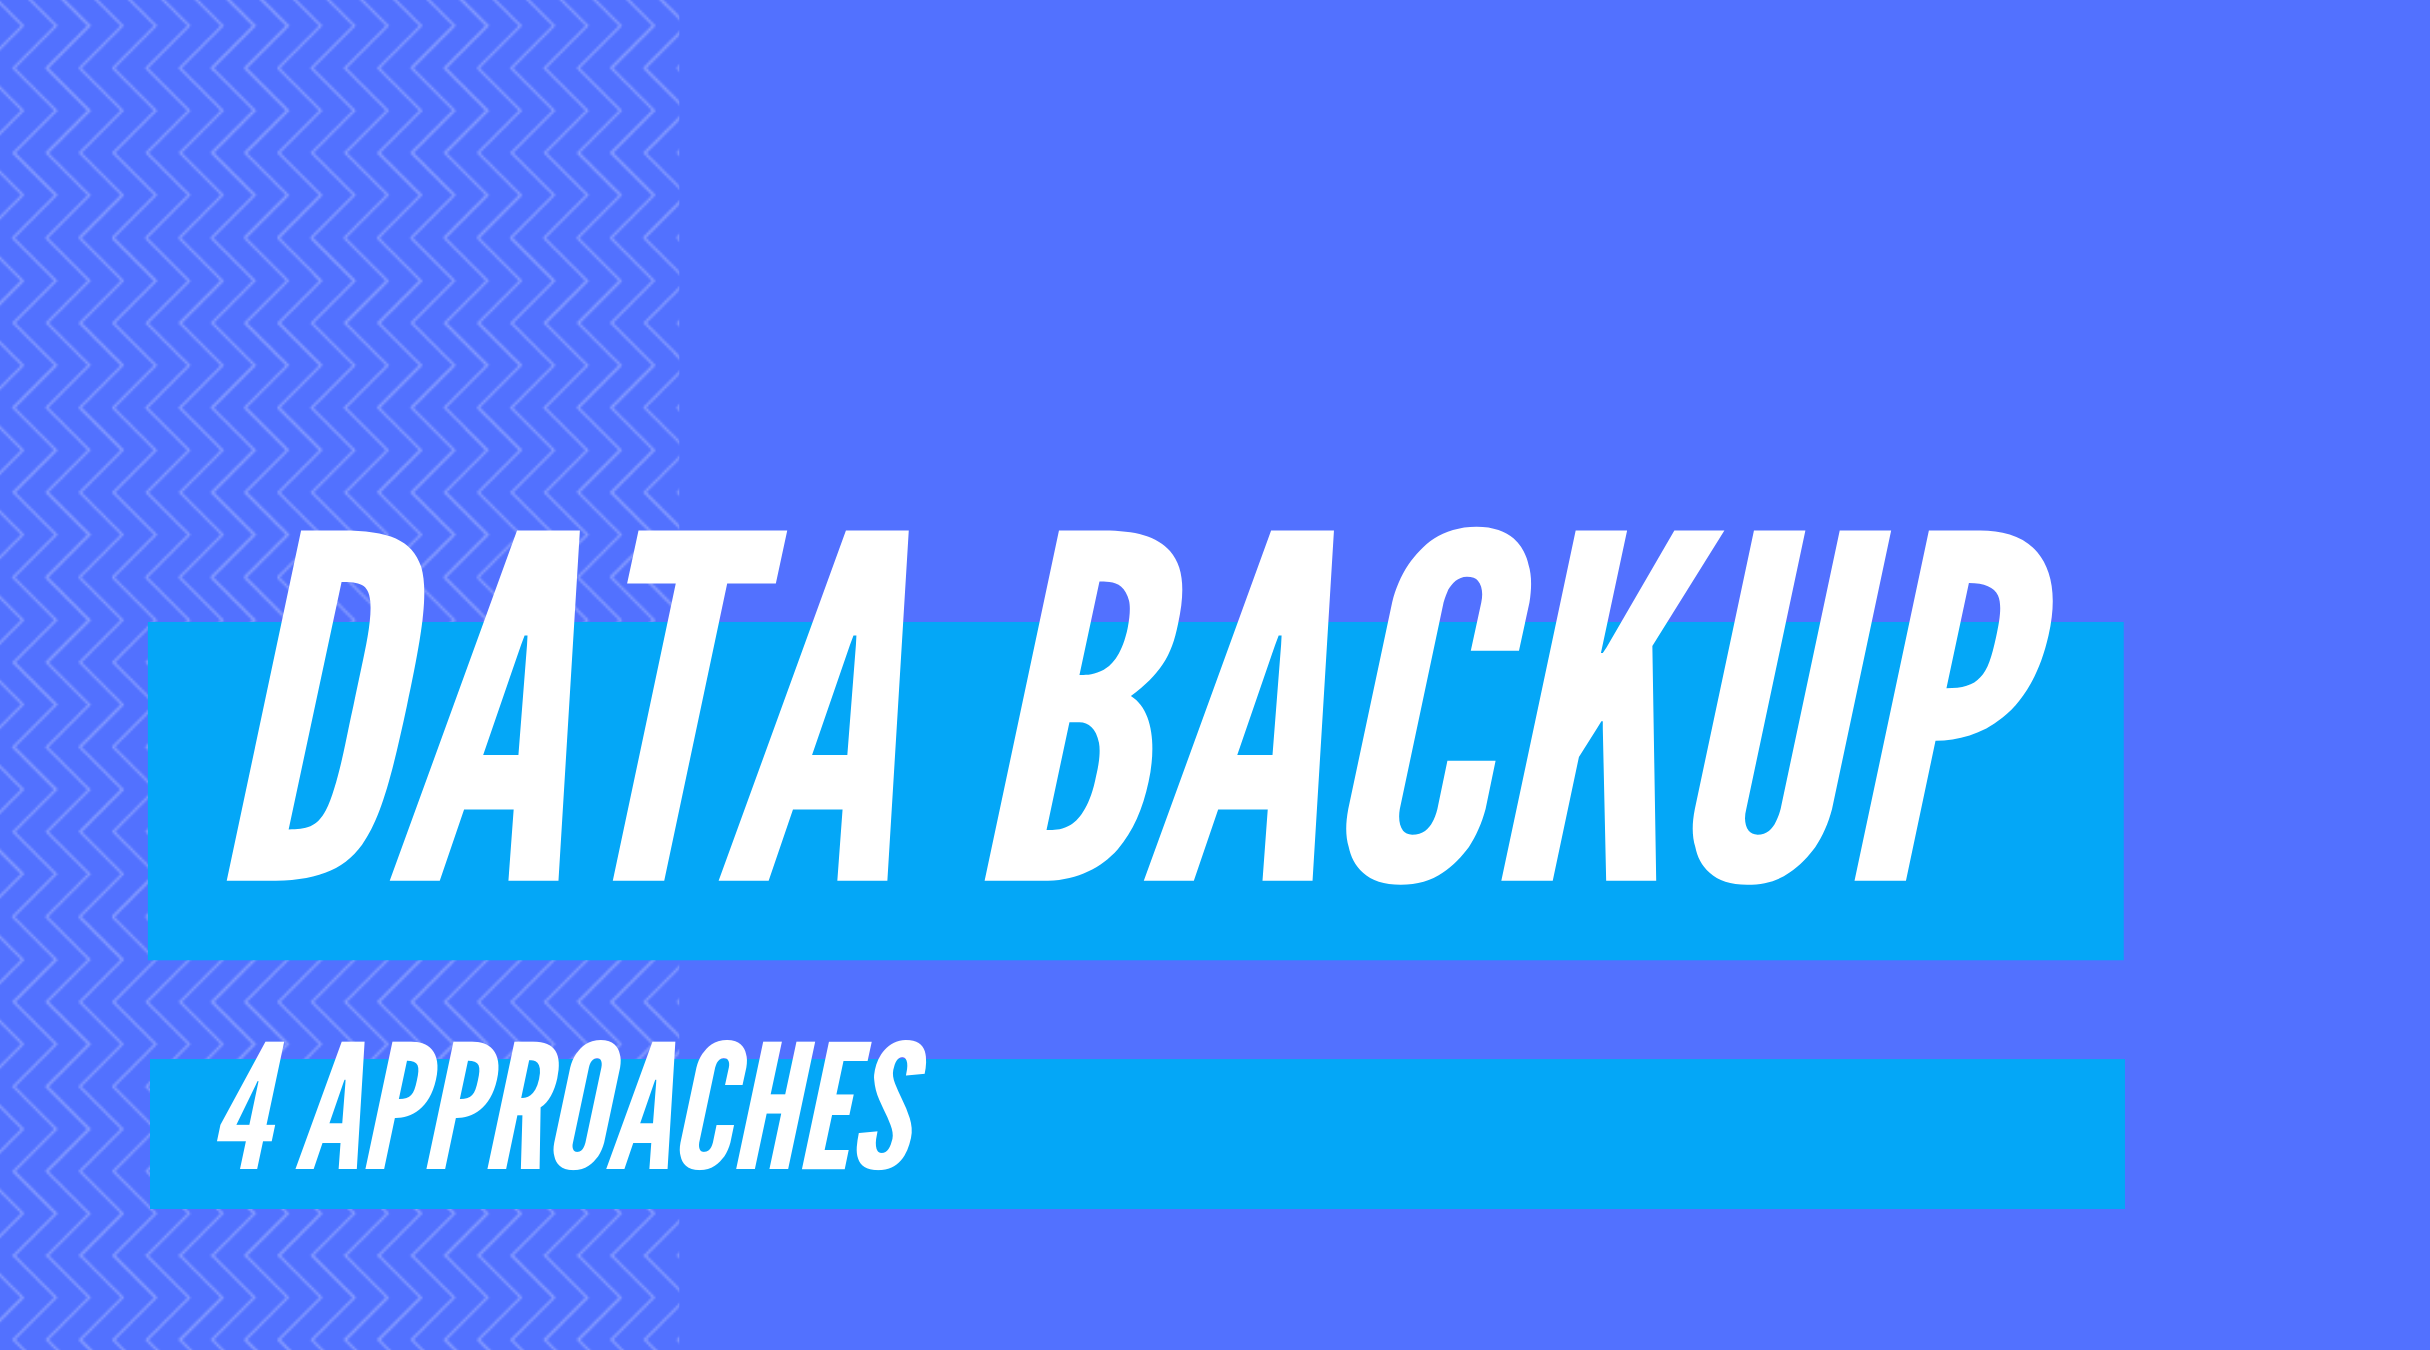 4 Approaches to Data Backup